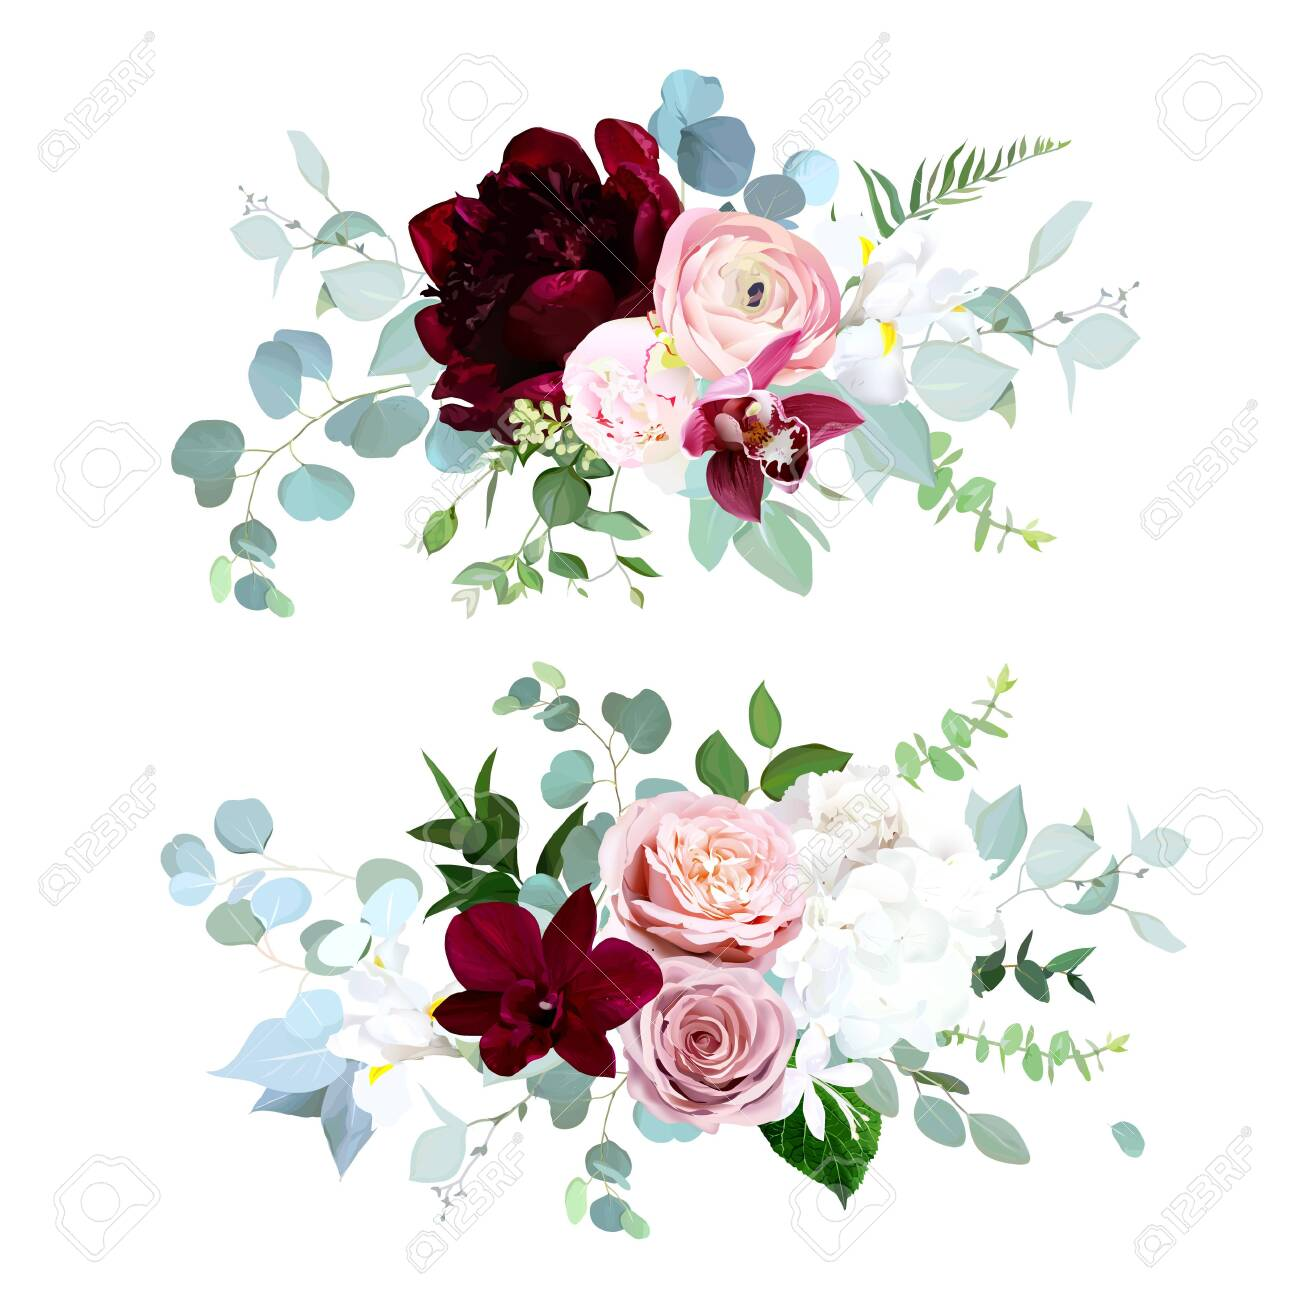 Luxury fall flowers vector bouquets. Pink orchid, dusty pink rose, ranunculus, burgundy red peony, white hydrangea and iris, blue eucalyptus, greenery. Autumn wedding flowers. Isolated and editable - 135077823